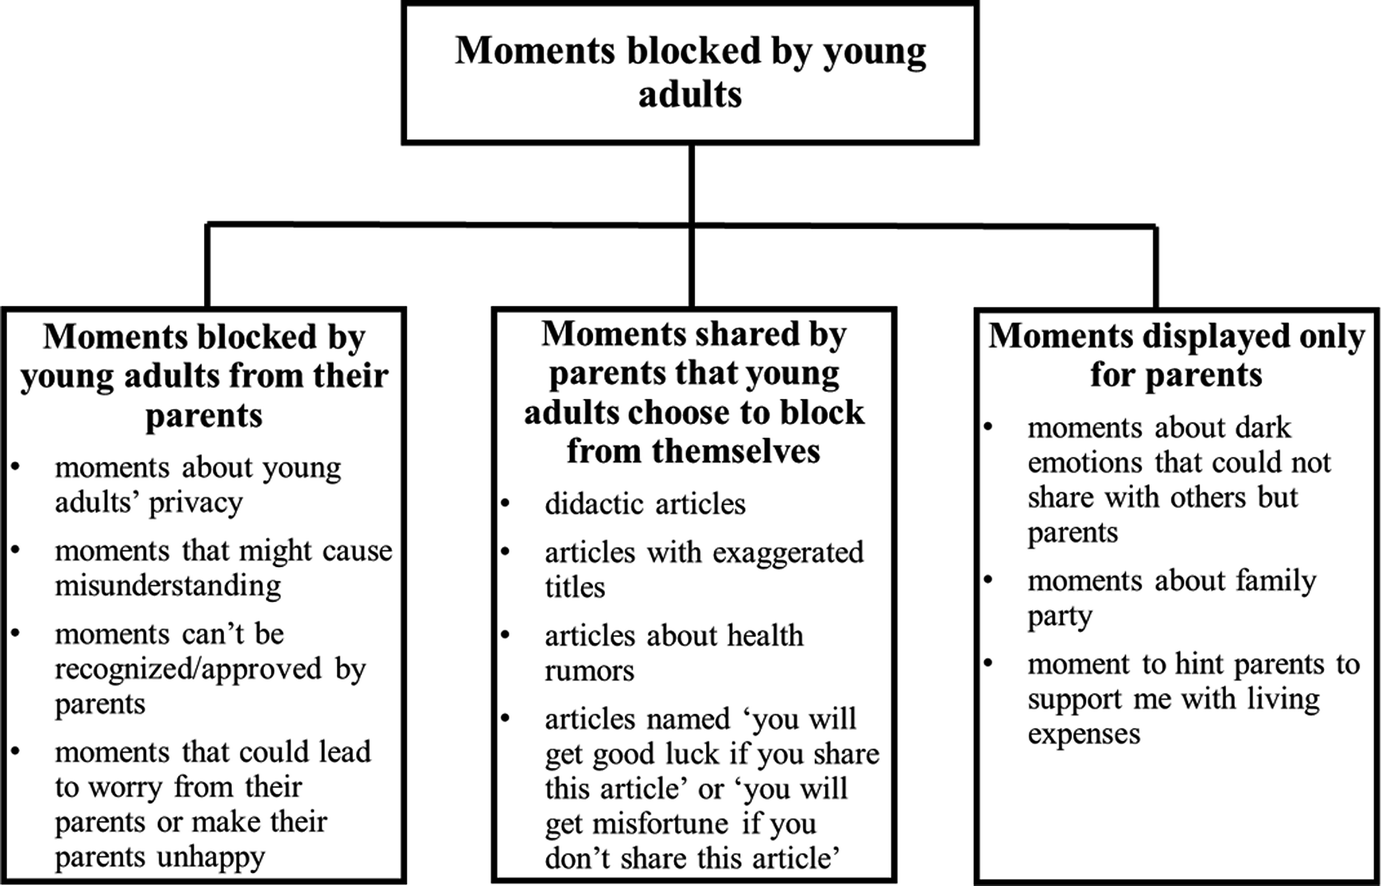 Exploring the Blocking Behavior Between Young Adults and